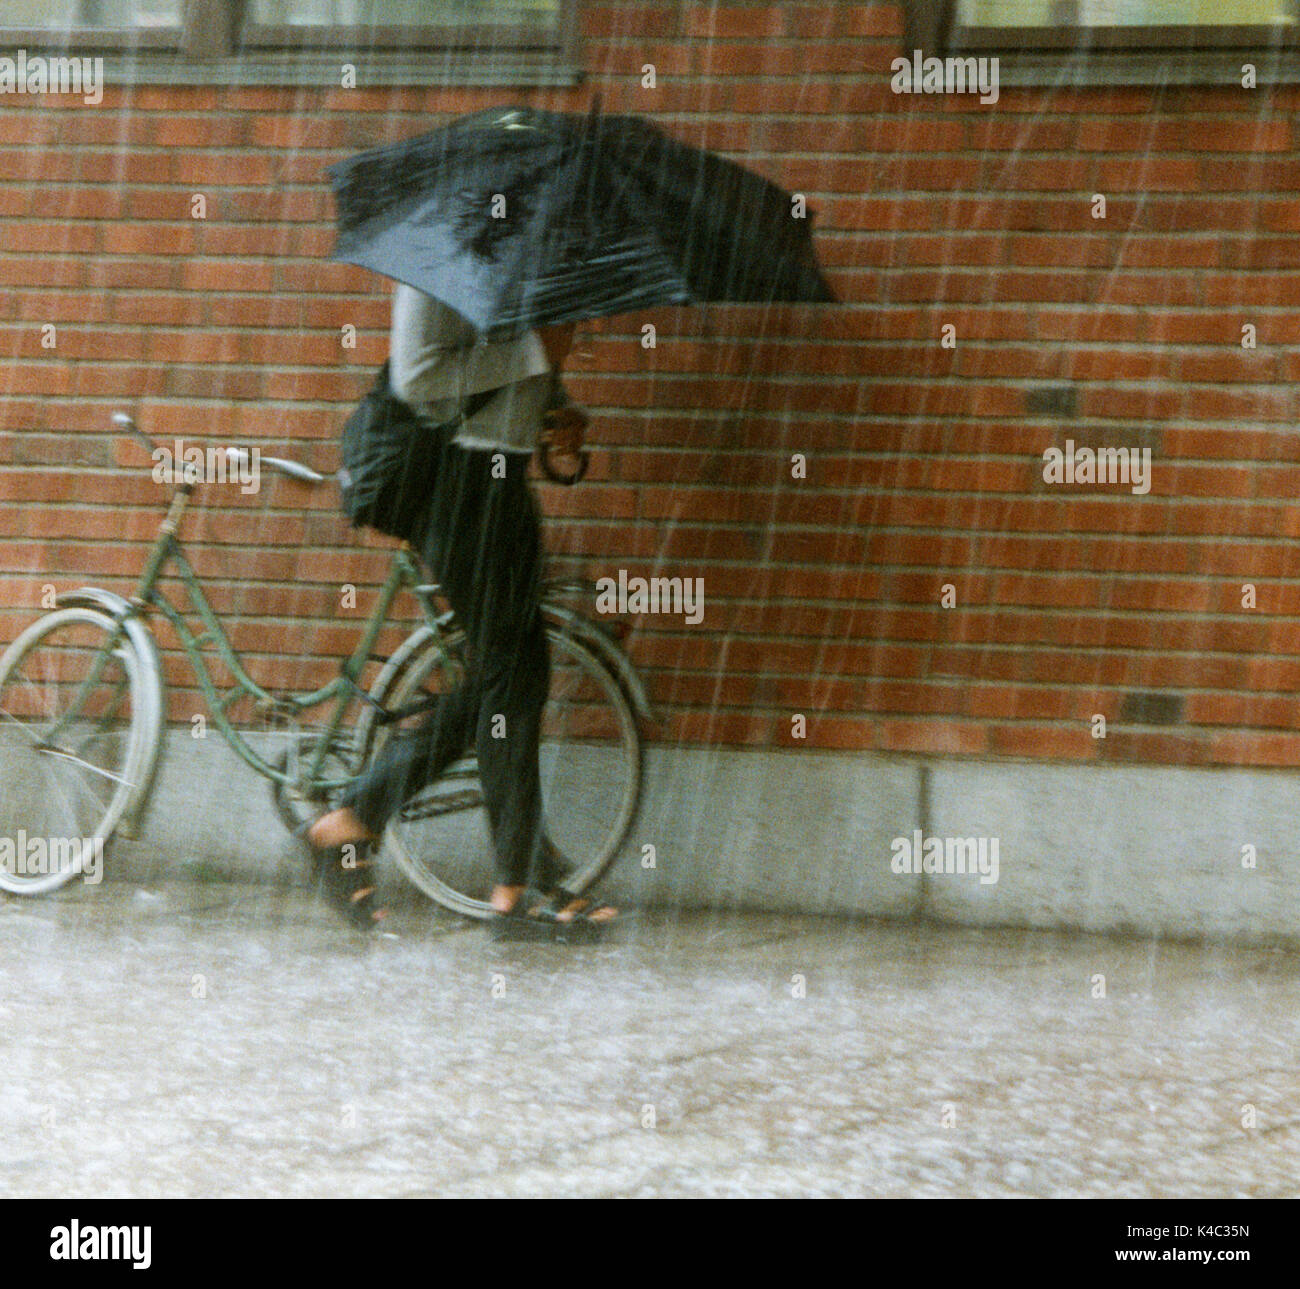 WOMEN under umbrellaat summer rain 2011 - Stock Image